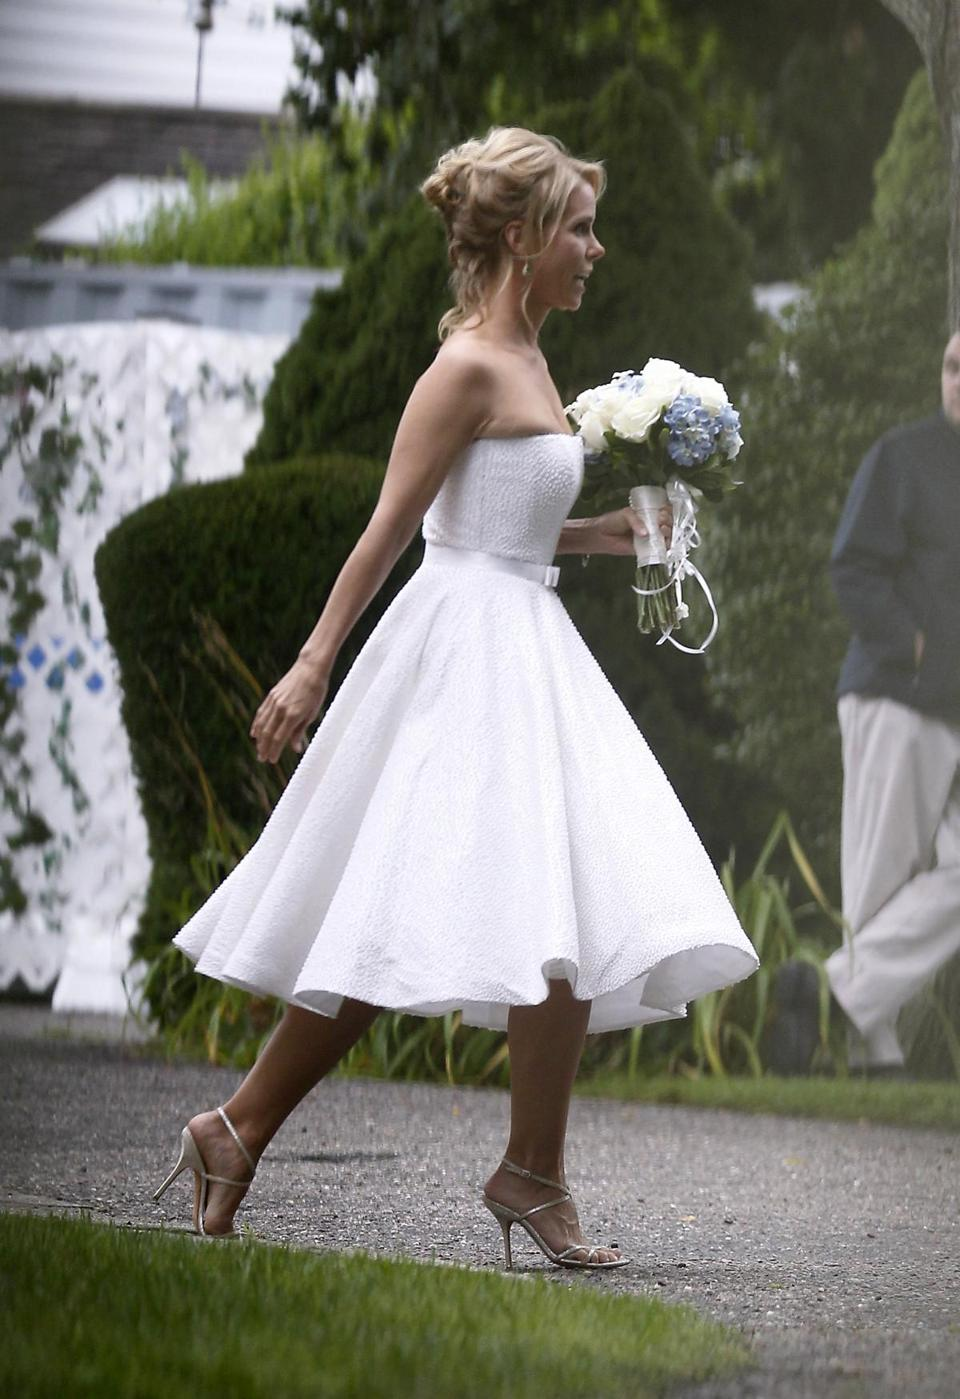 Cheryl Hines walked across a lawn to the tent where her wedding to Robert F. Kennedy Jr. took place.